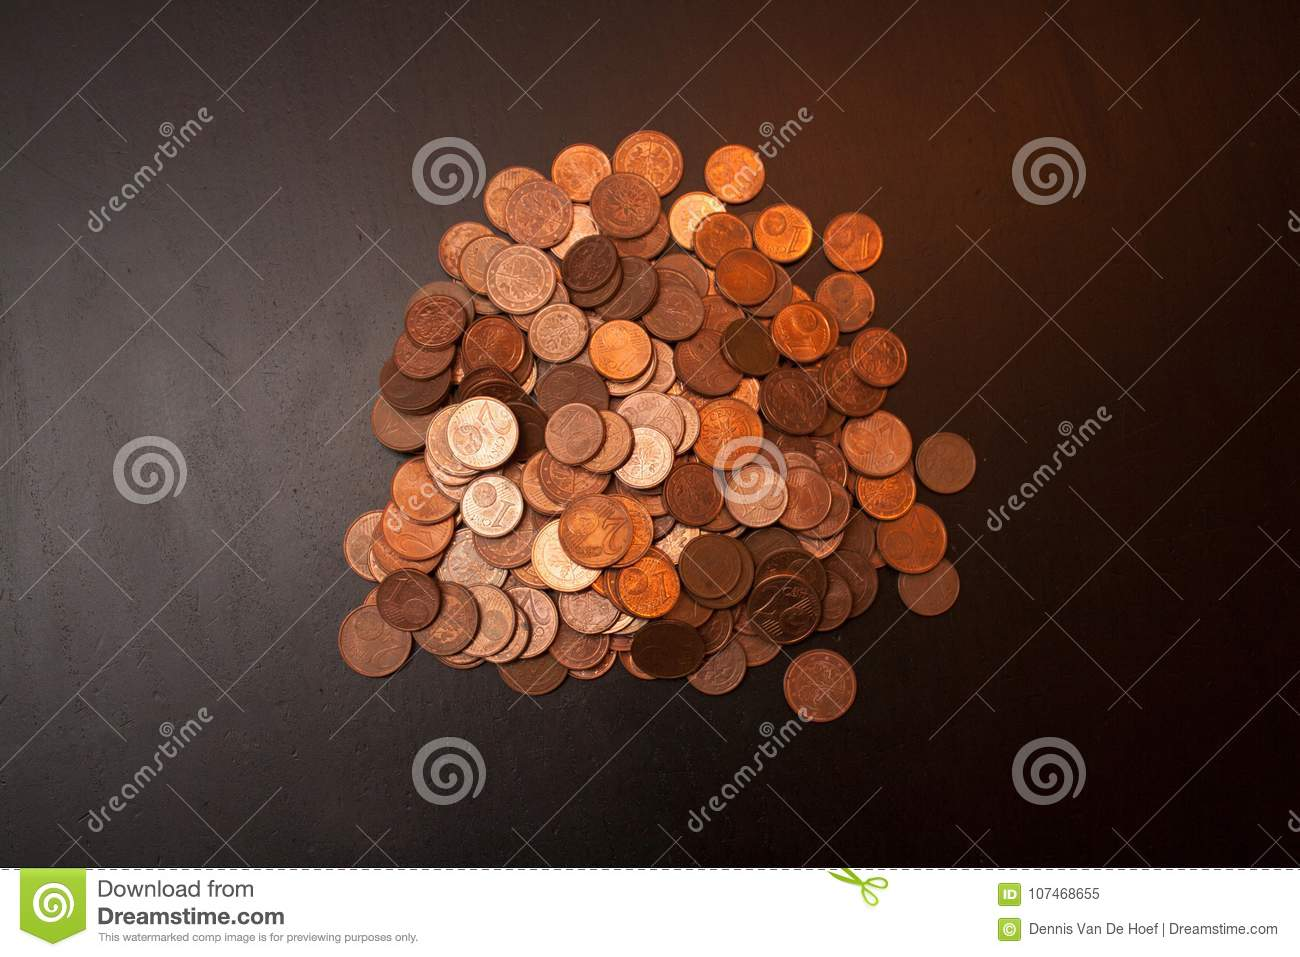 A pile of euro cents.